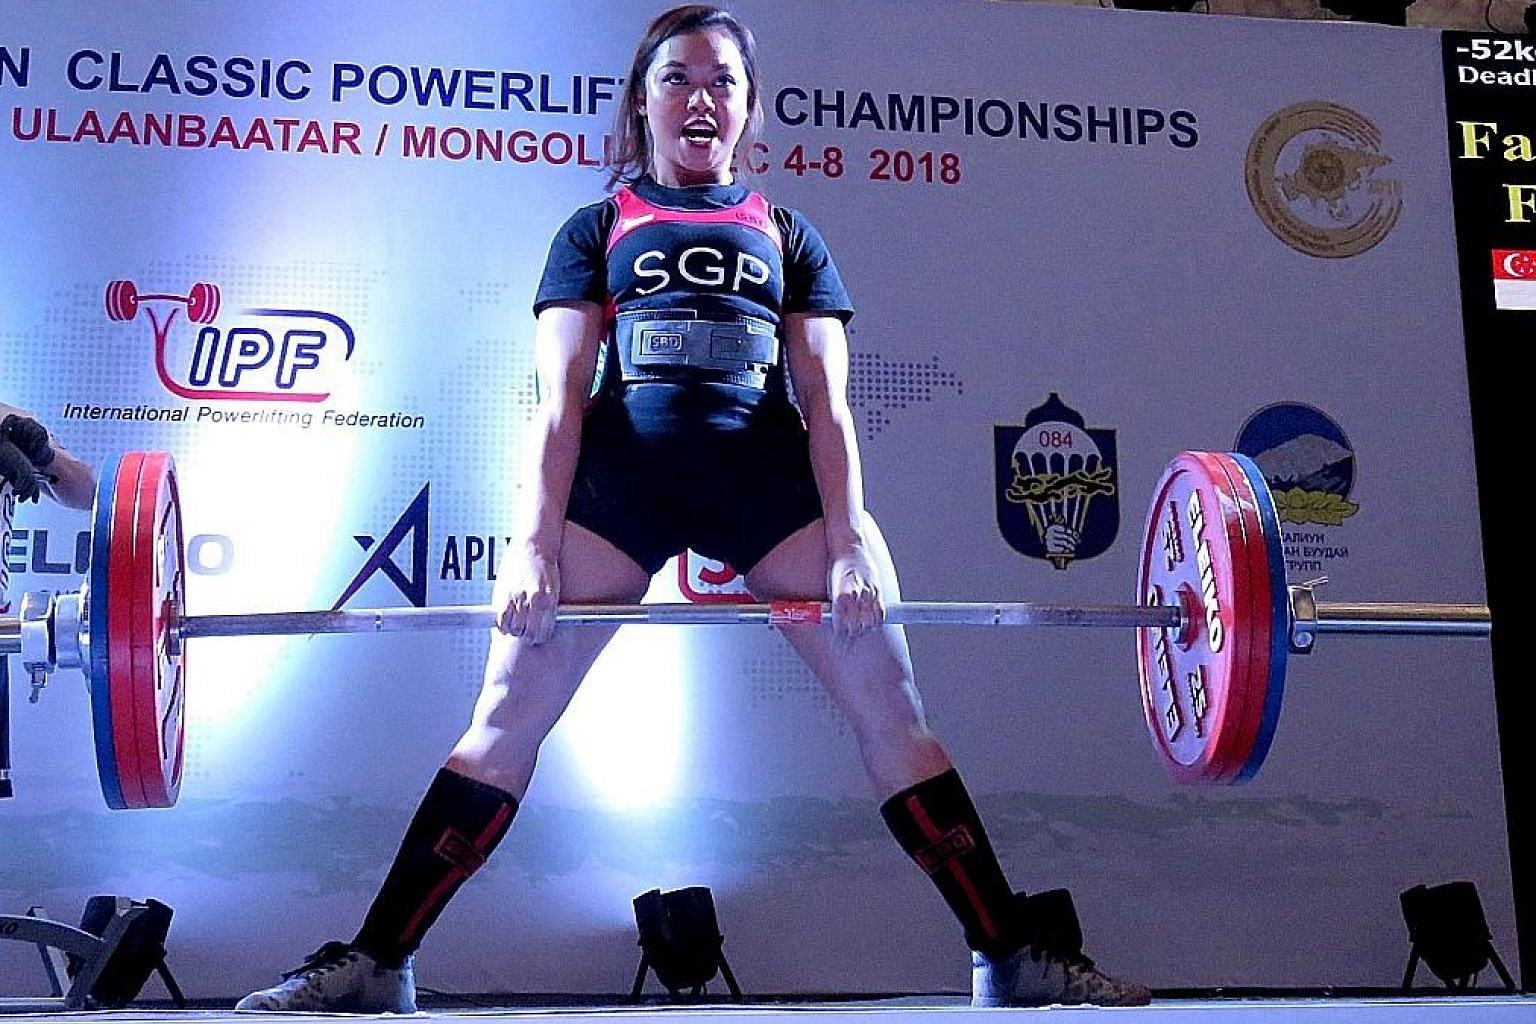 Farhanna Farid (left), weighing below 52kg, broke the Asian record thrice, ending with a 173kg dead lift in Ulaanbaatar, while Thor Qian Qi, in the U-52kg junior class, managed a 130kg squat.